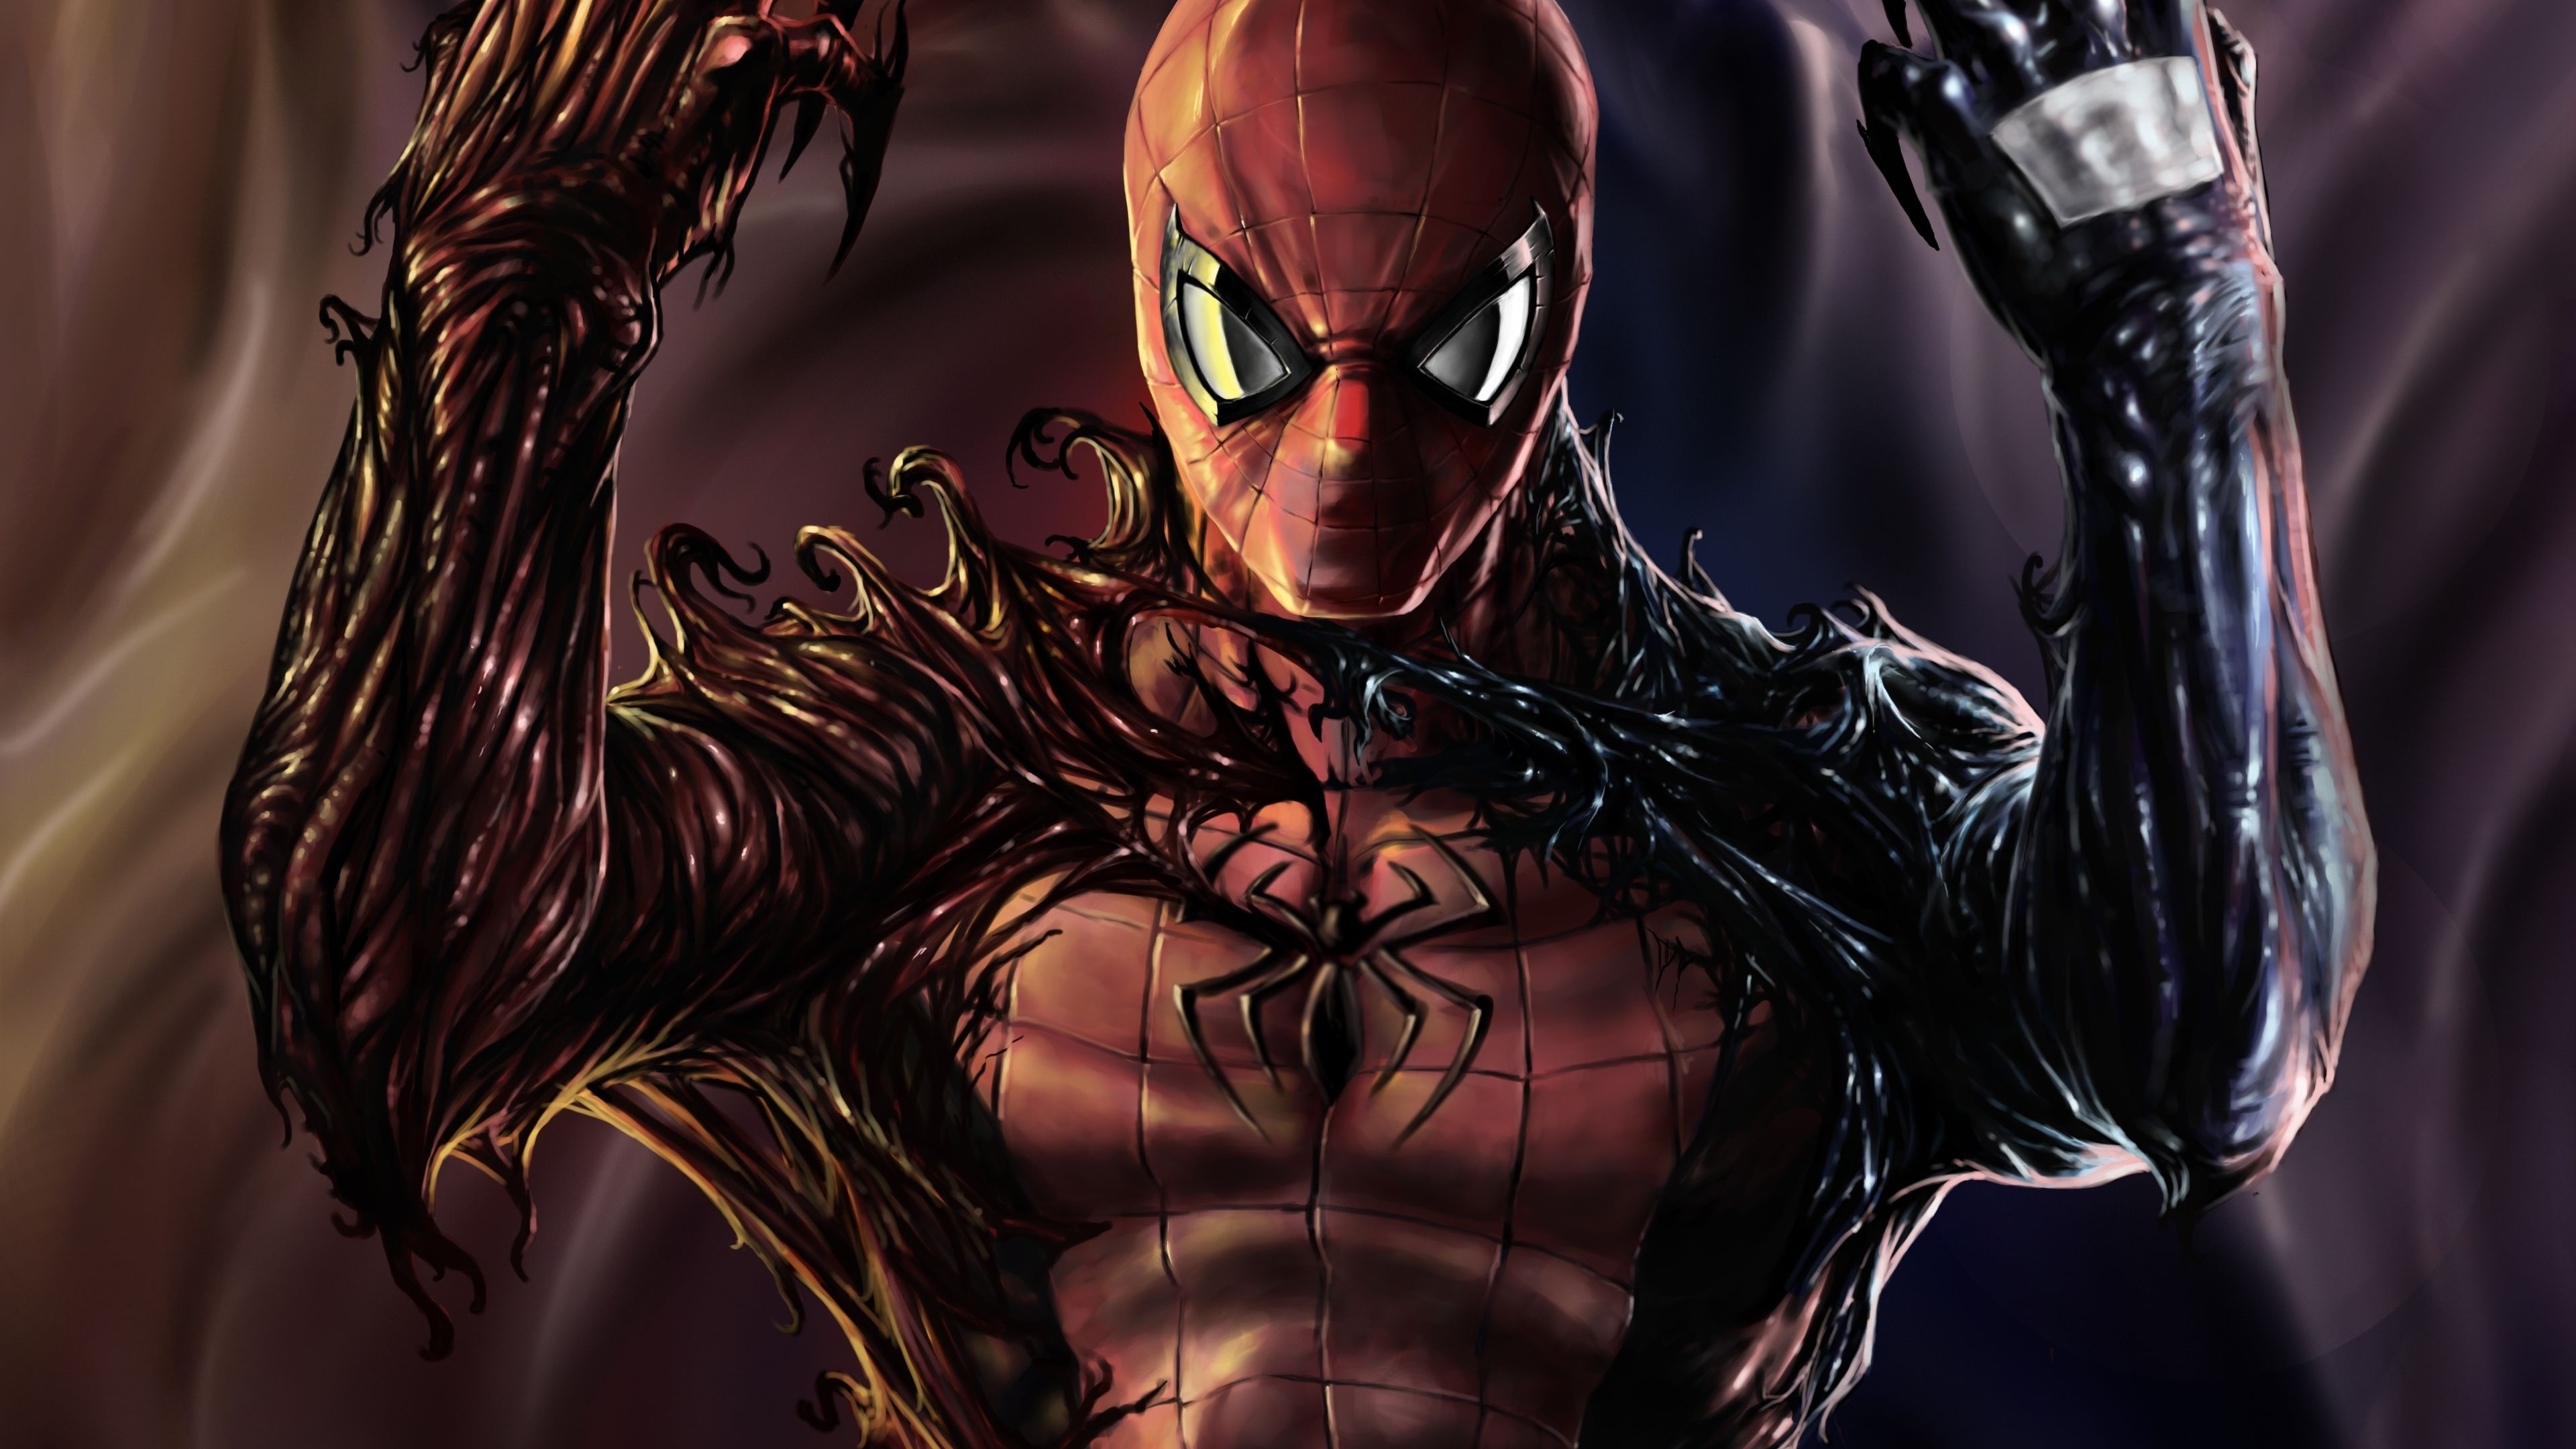 Carnage Venom Spiderman Artwork Venom Wallpapers Superheroes Wallpapers Spiderman Wallpapers Hd Wallpapers Carnag Spiderman Artwork Venom Spiderman Carnage